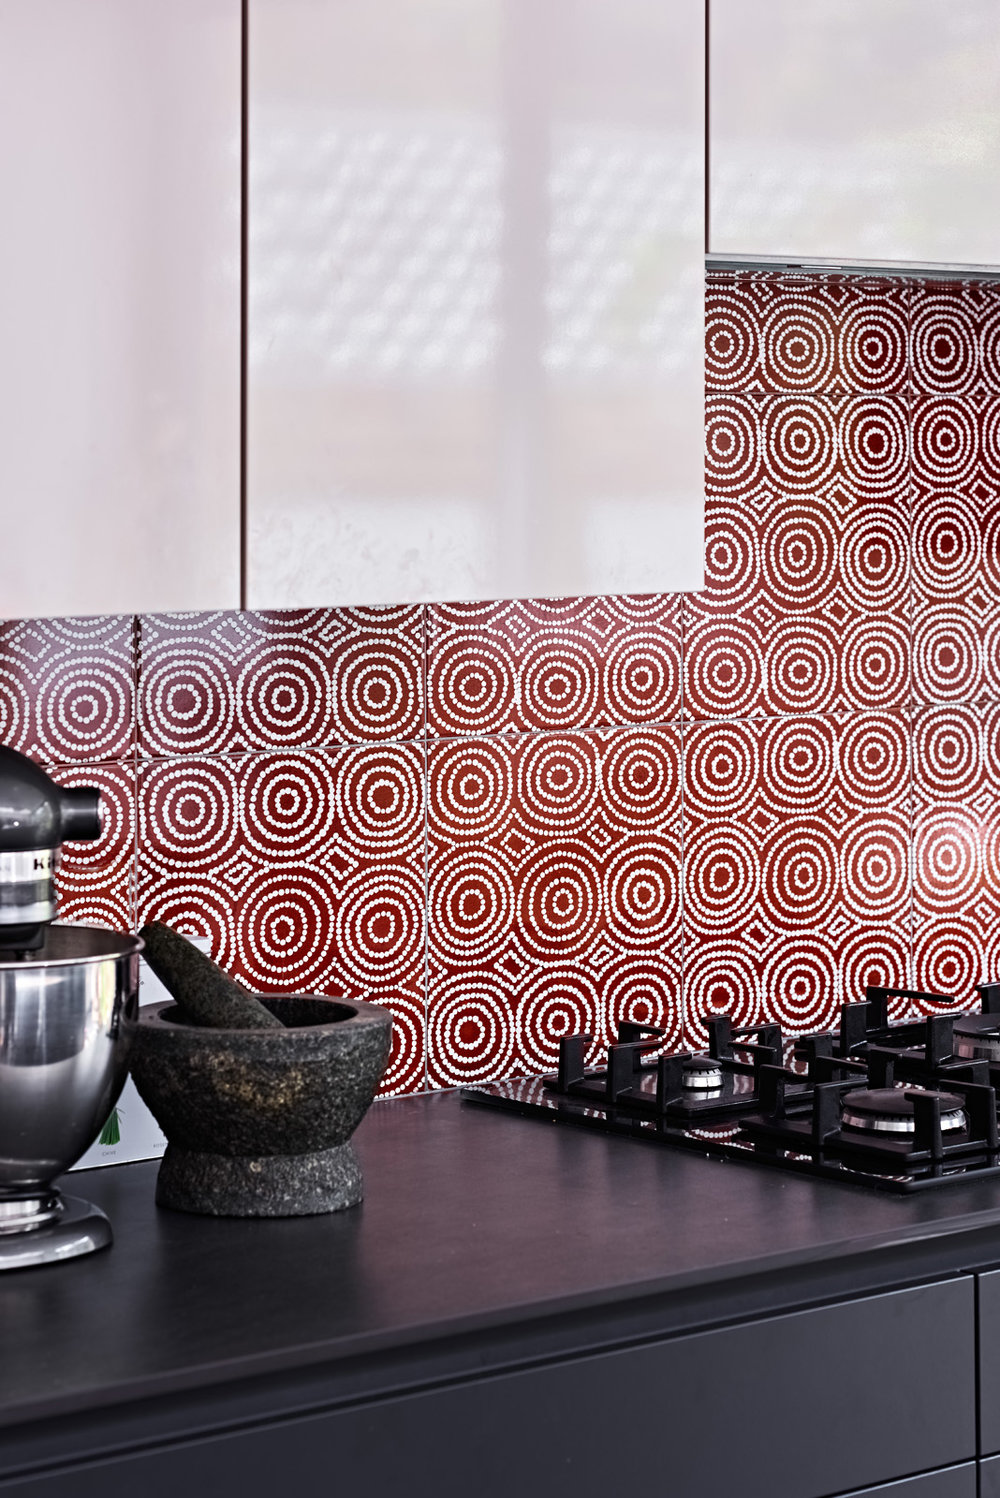 Celebrating british ceramic tiles in interiors bay gallery home our award winning bush onion 1 ceramic wall tile as a kitchen splash back dailygadgetfo Gallery